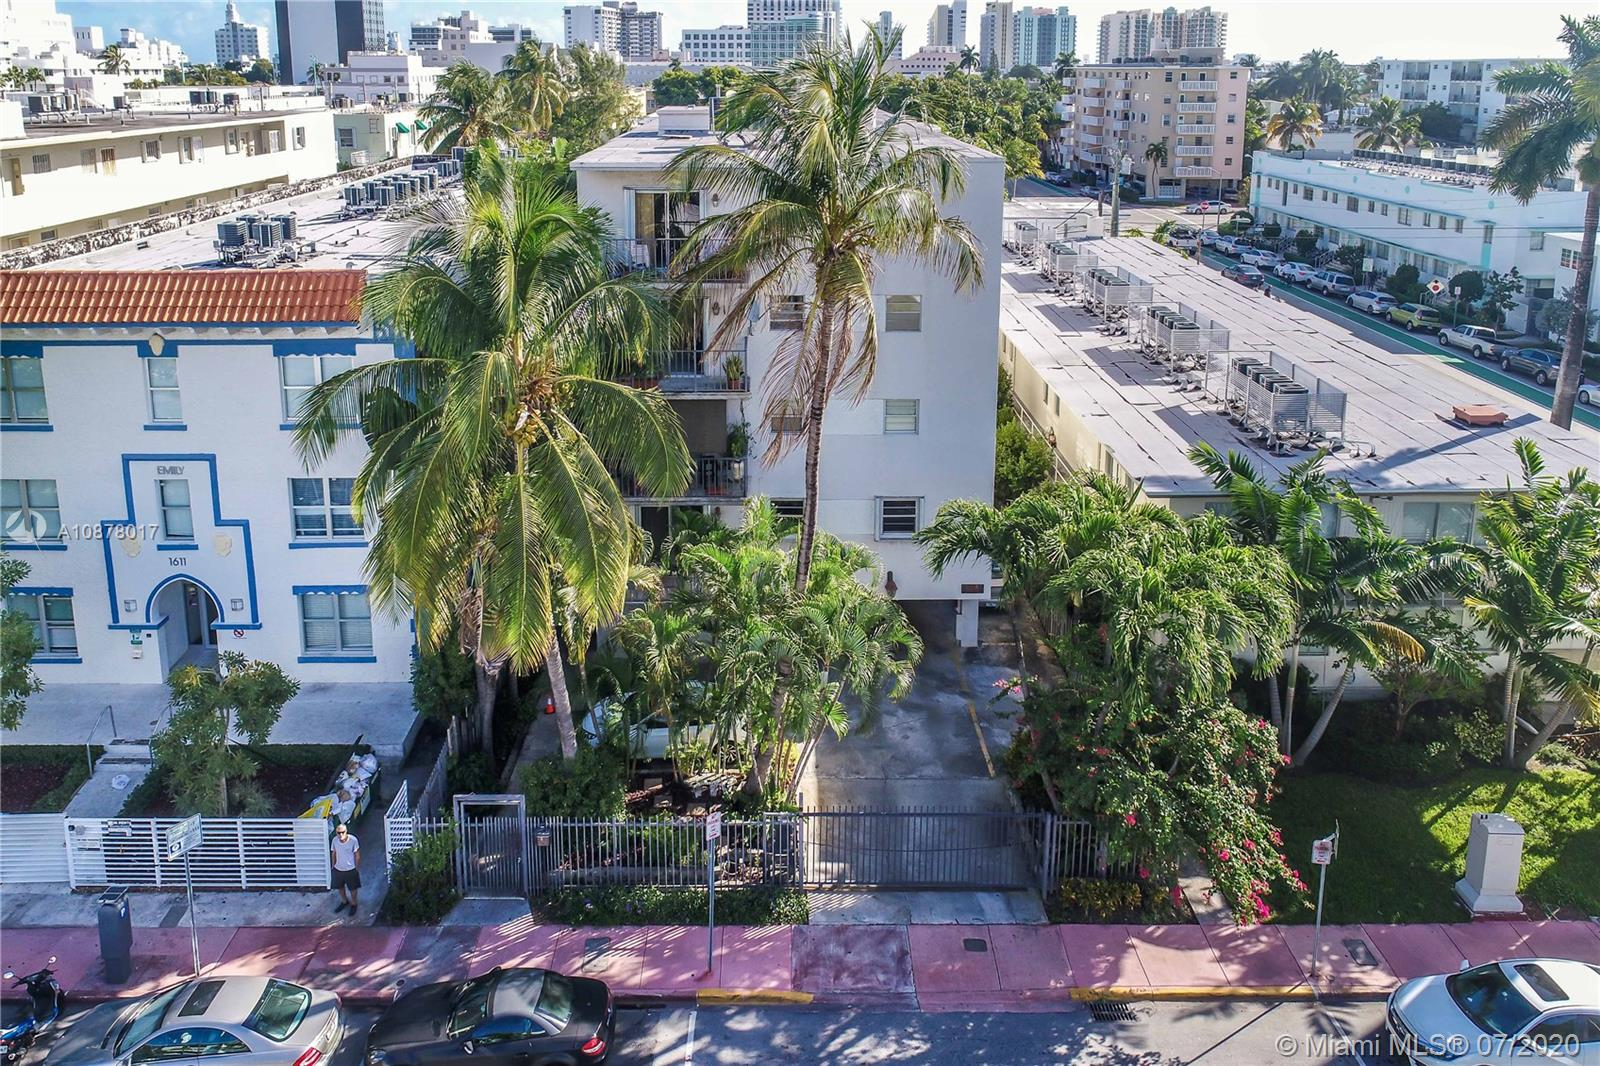 1605 Meridian Ave # 401, Miami Beach, Florida 33139, 2 Bedrooms Bedrooms, ,2 BathroomsBathrooms,Residential,For Sale,1605 Meridian Ave # 401,A10878017